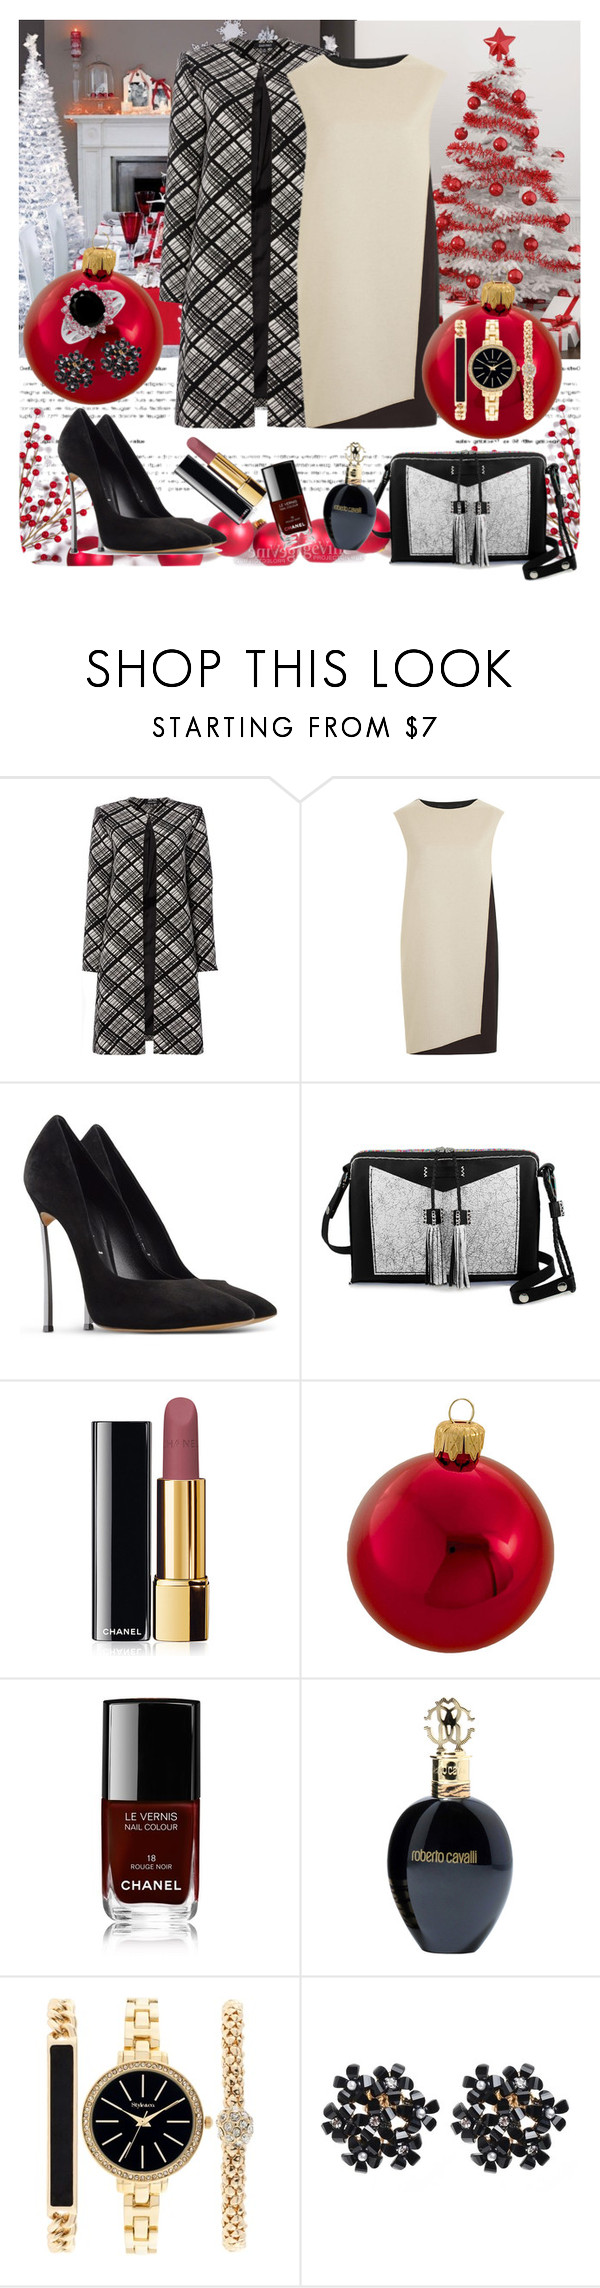 """""""Untitled #582"""" by misaflowers ❤ liked on Polyvore featuring Ellen Tracy, PINGHE, Casadei, Carianne Moore, Chanel, Kurt Adler, Roberto Cavalli and Style & Co."""